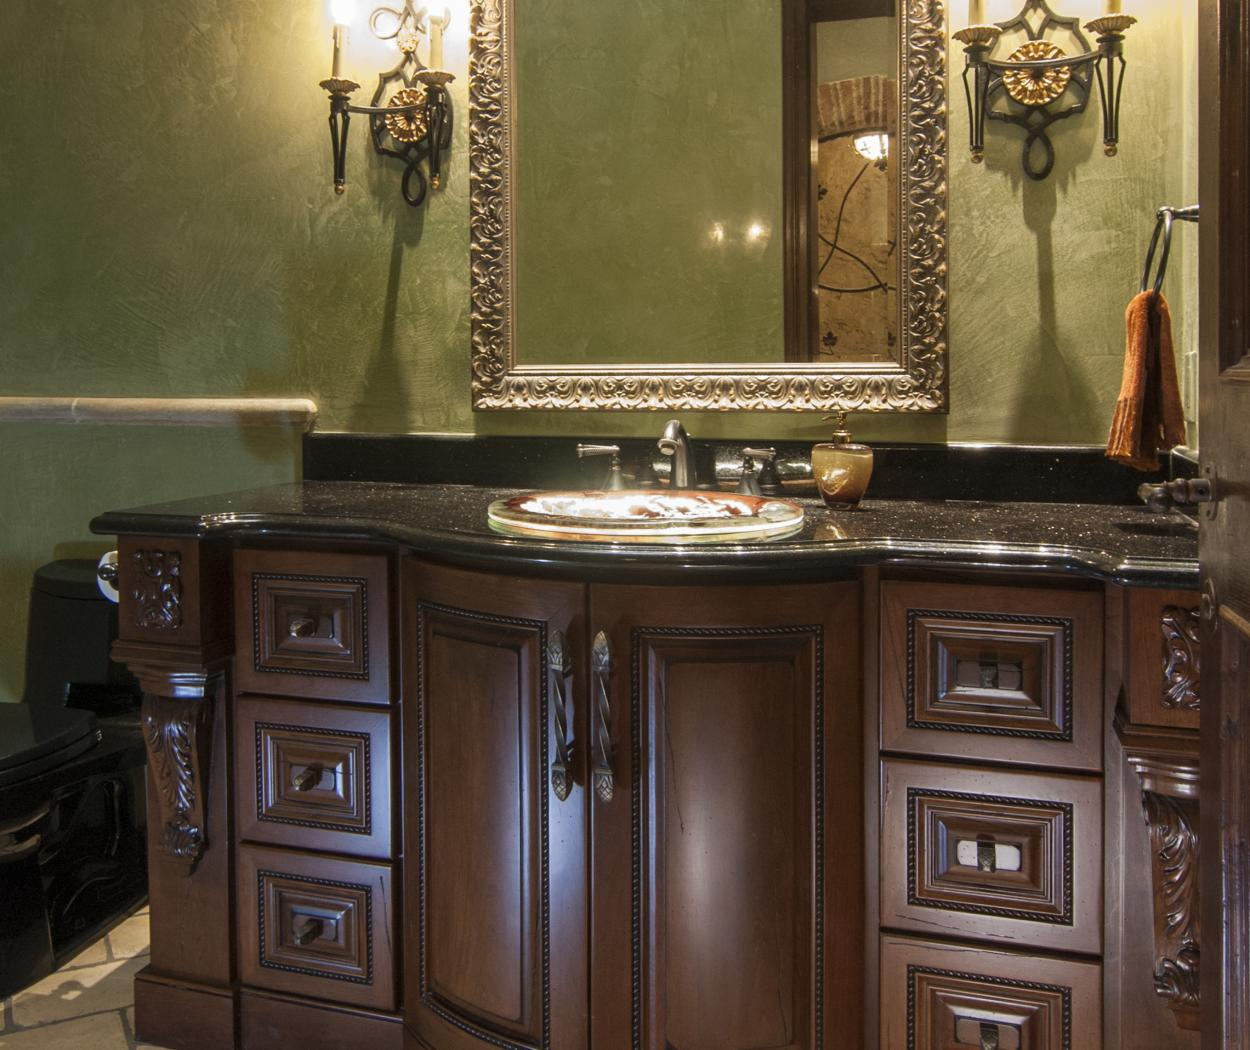 Traditional Bathroom Vanity with Decorative Corbels and Hardware